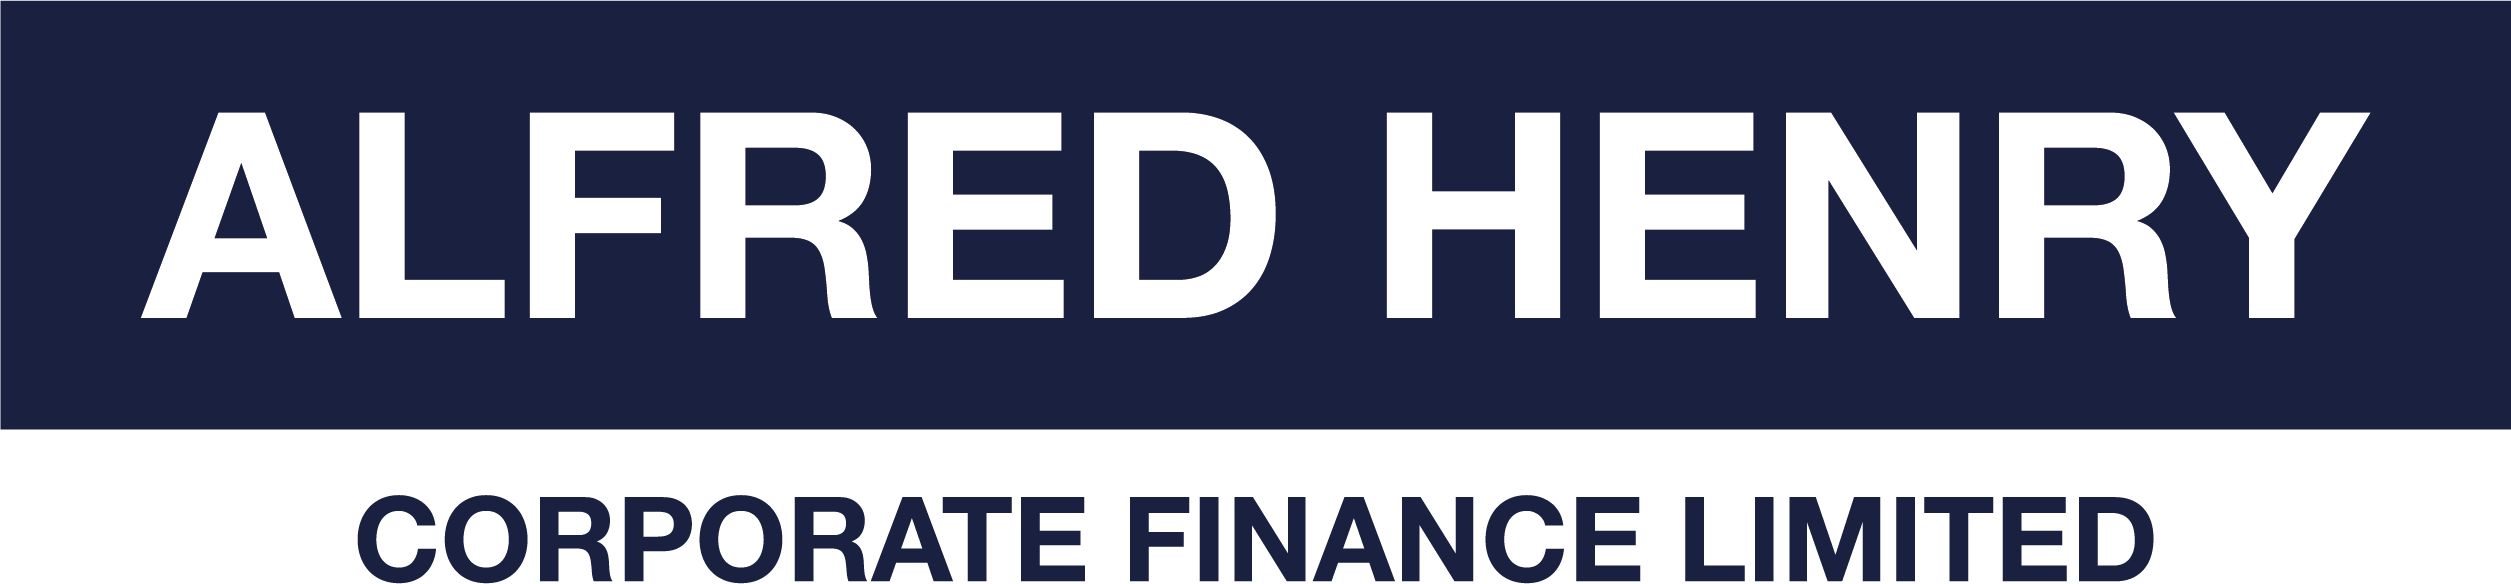 Alfred Henry Corporate Finance